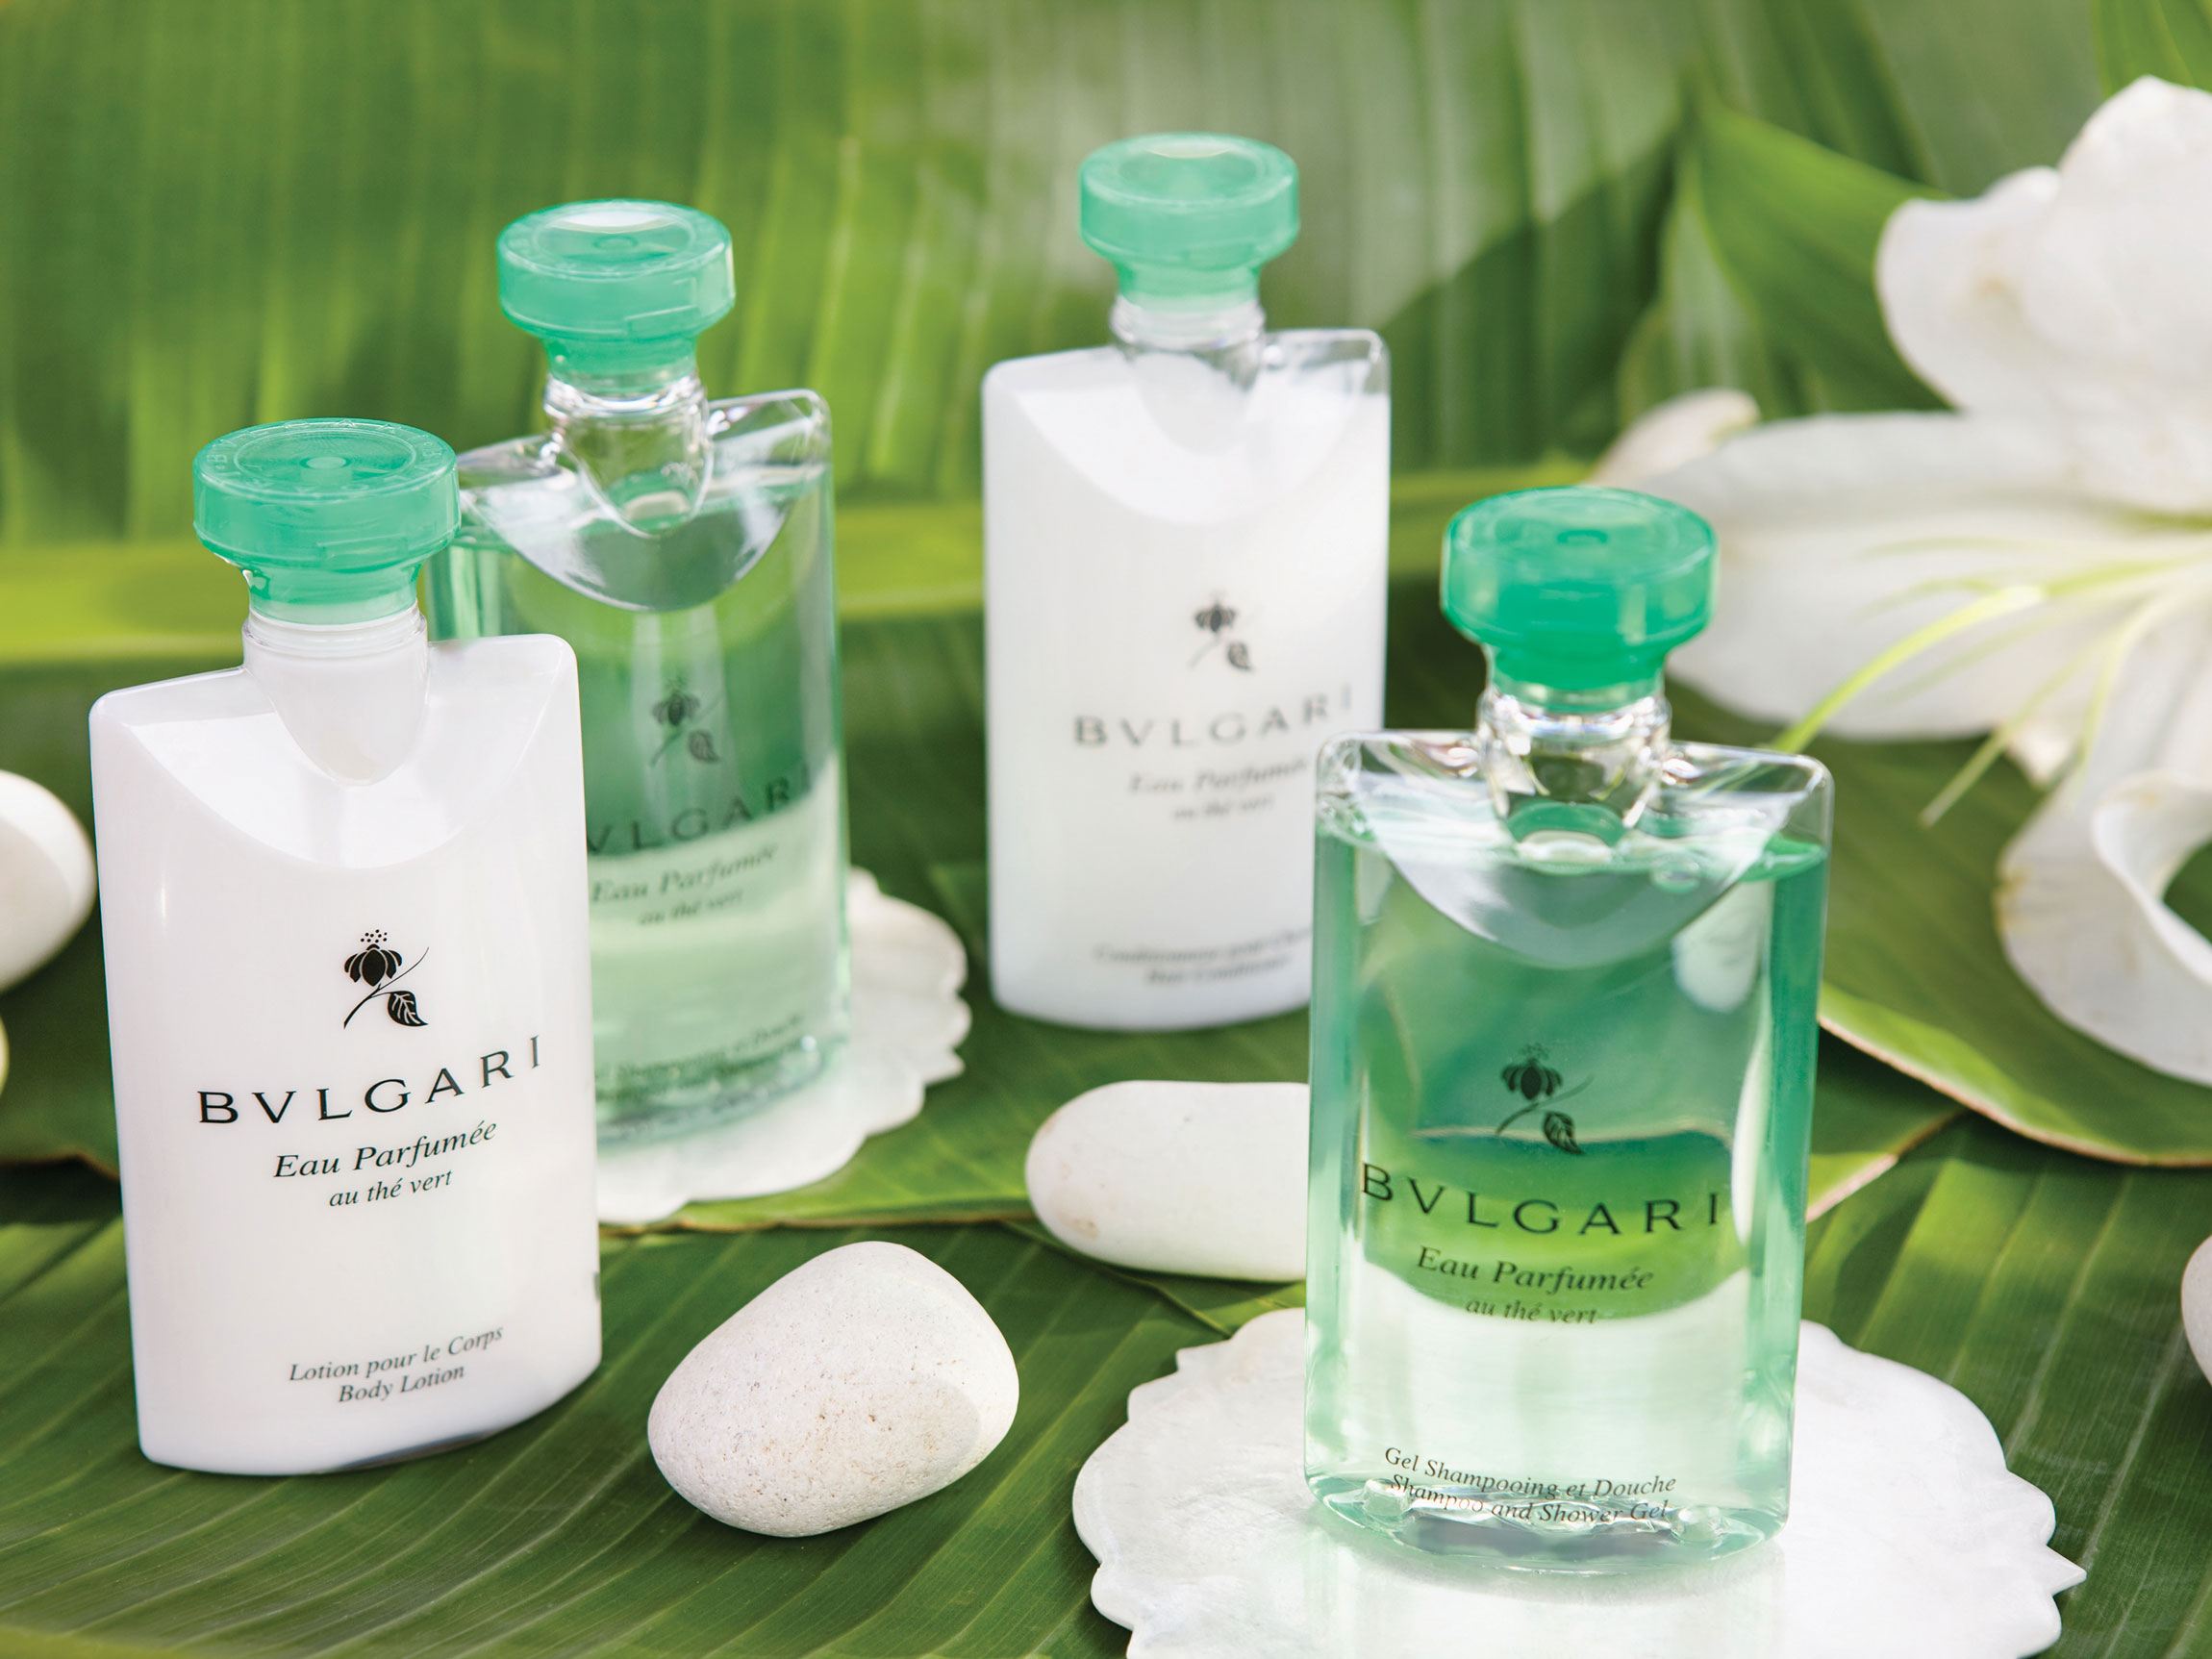 Bulgari Amenities at a Punta Cana All Inclusive Family Resort